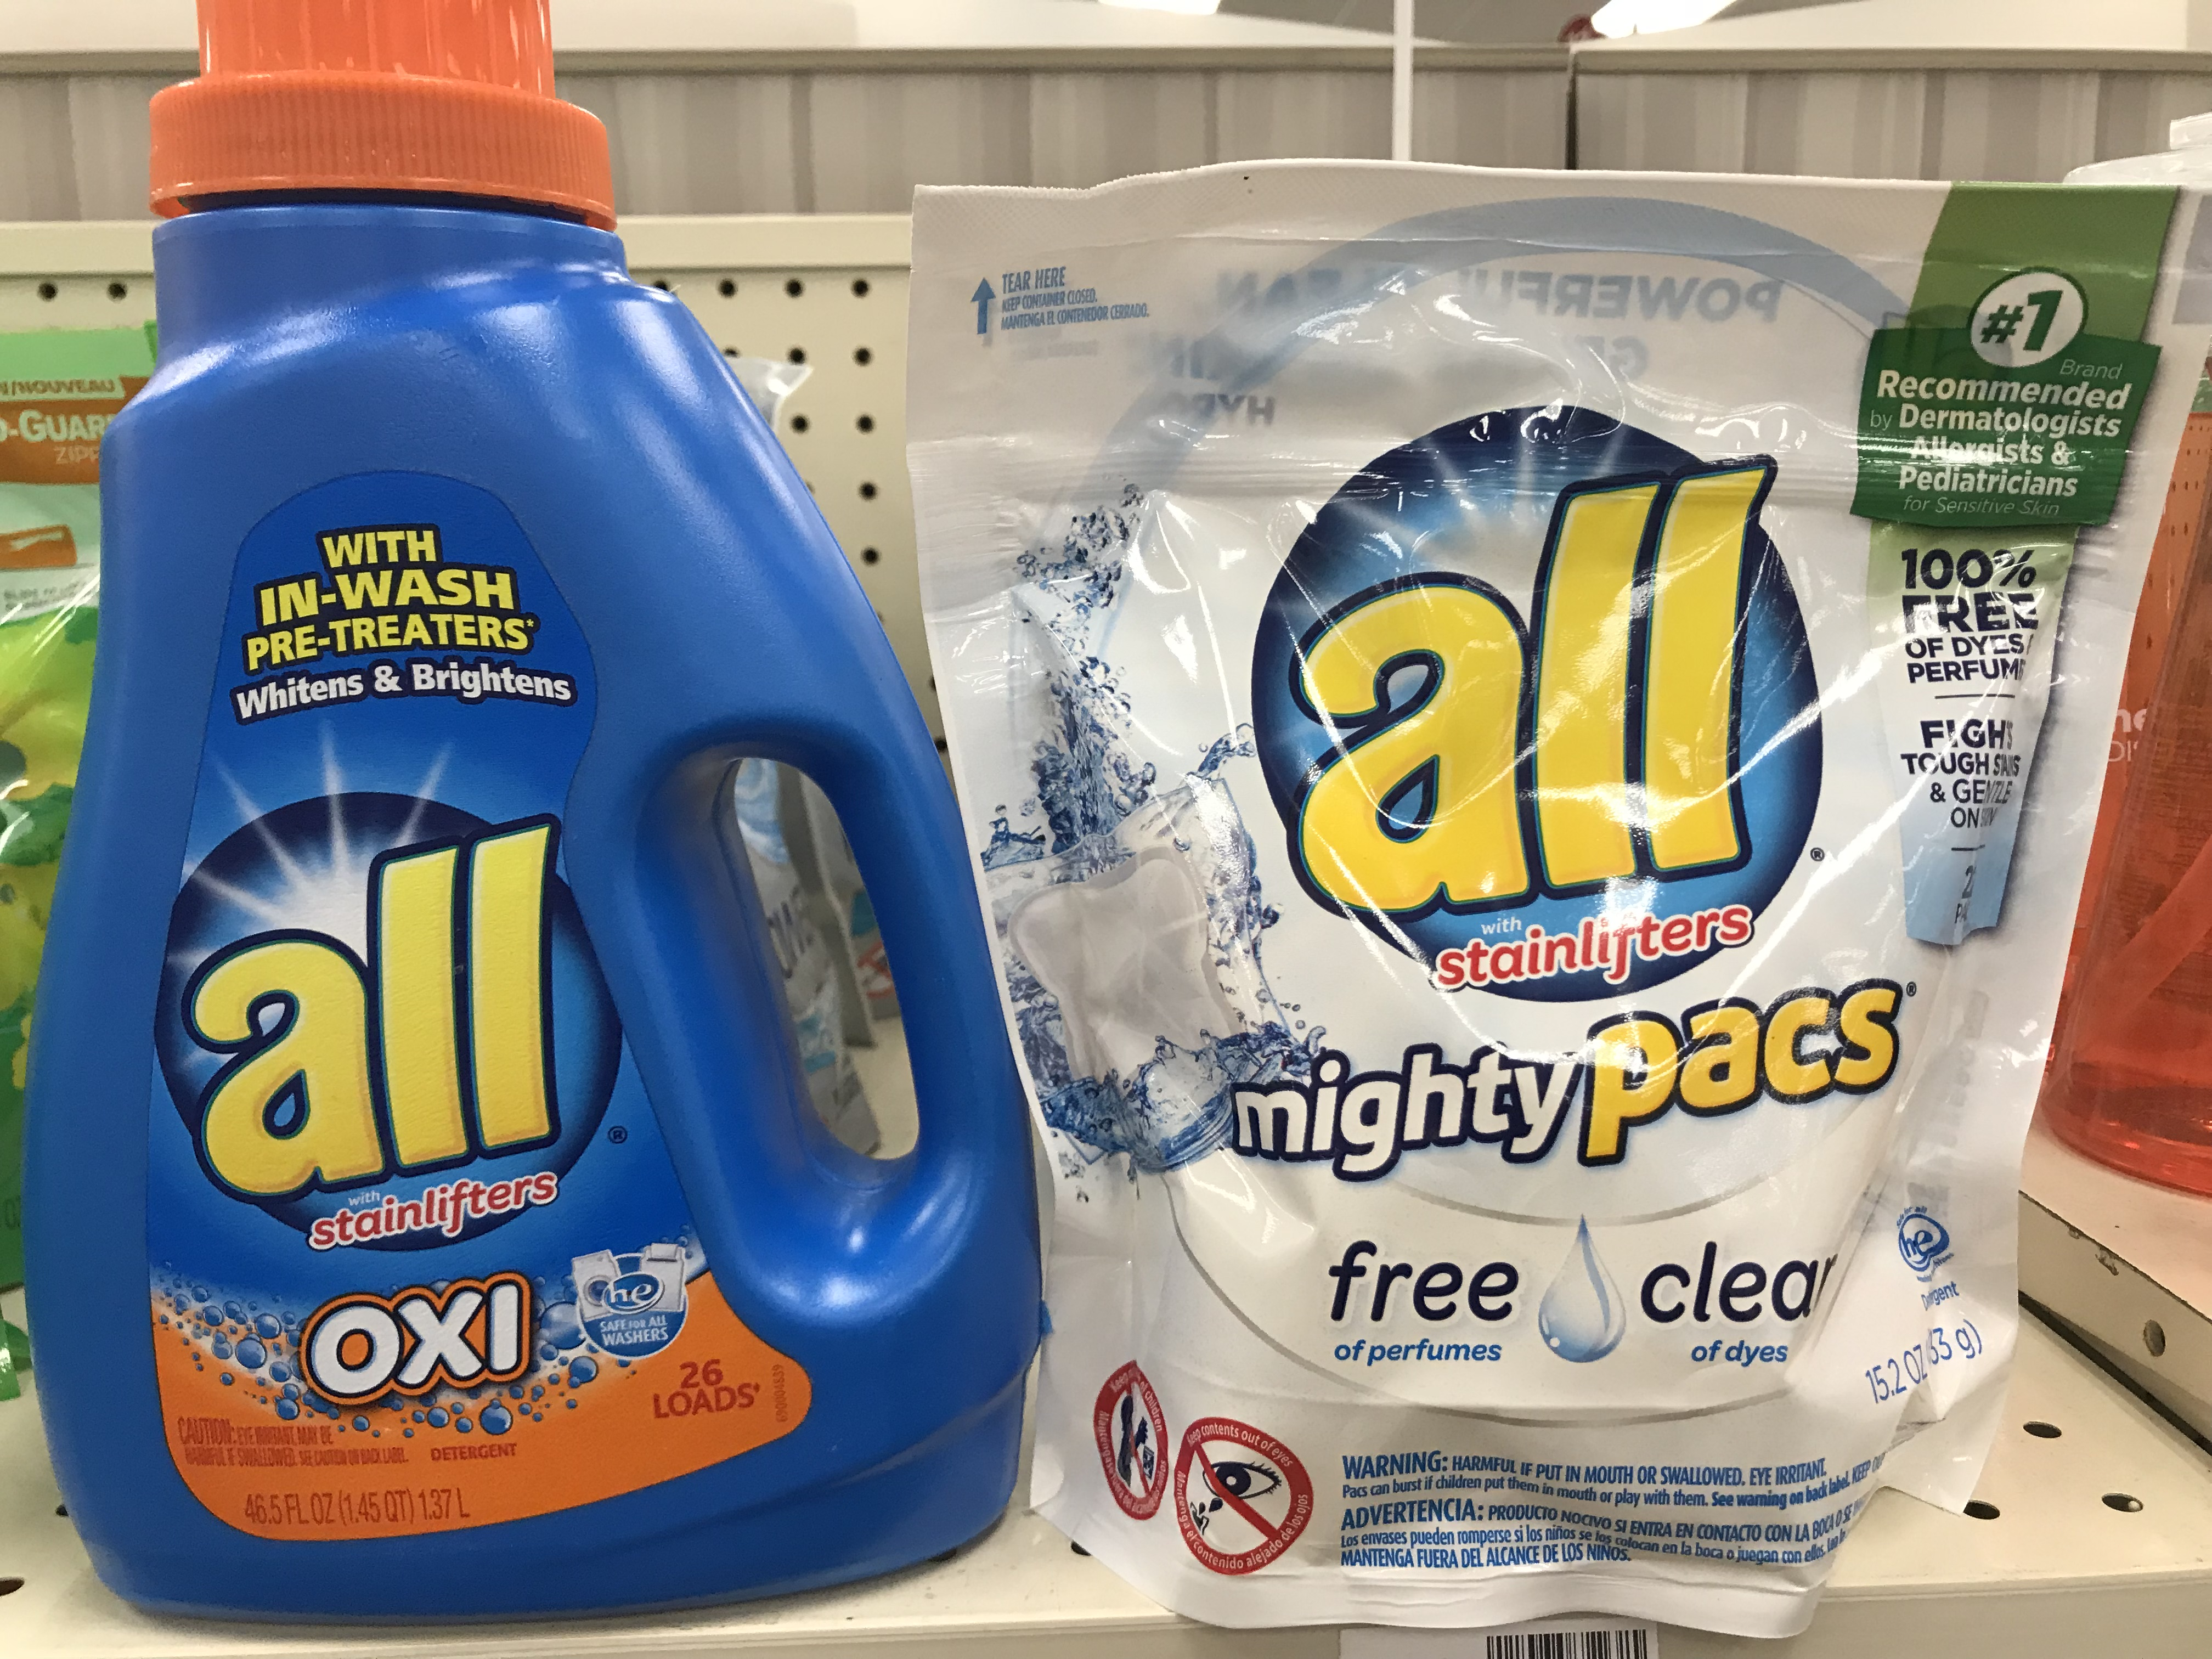 image about All Laundry Detergent Printable Coupons titled Fresh $1/1 All Laundry Detergent Coupon \u003d Merely $1.99 at